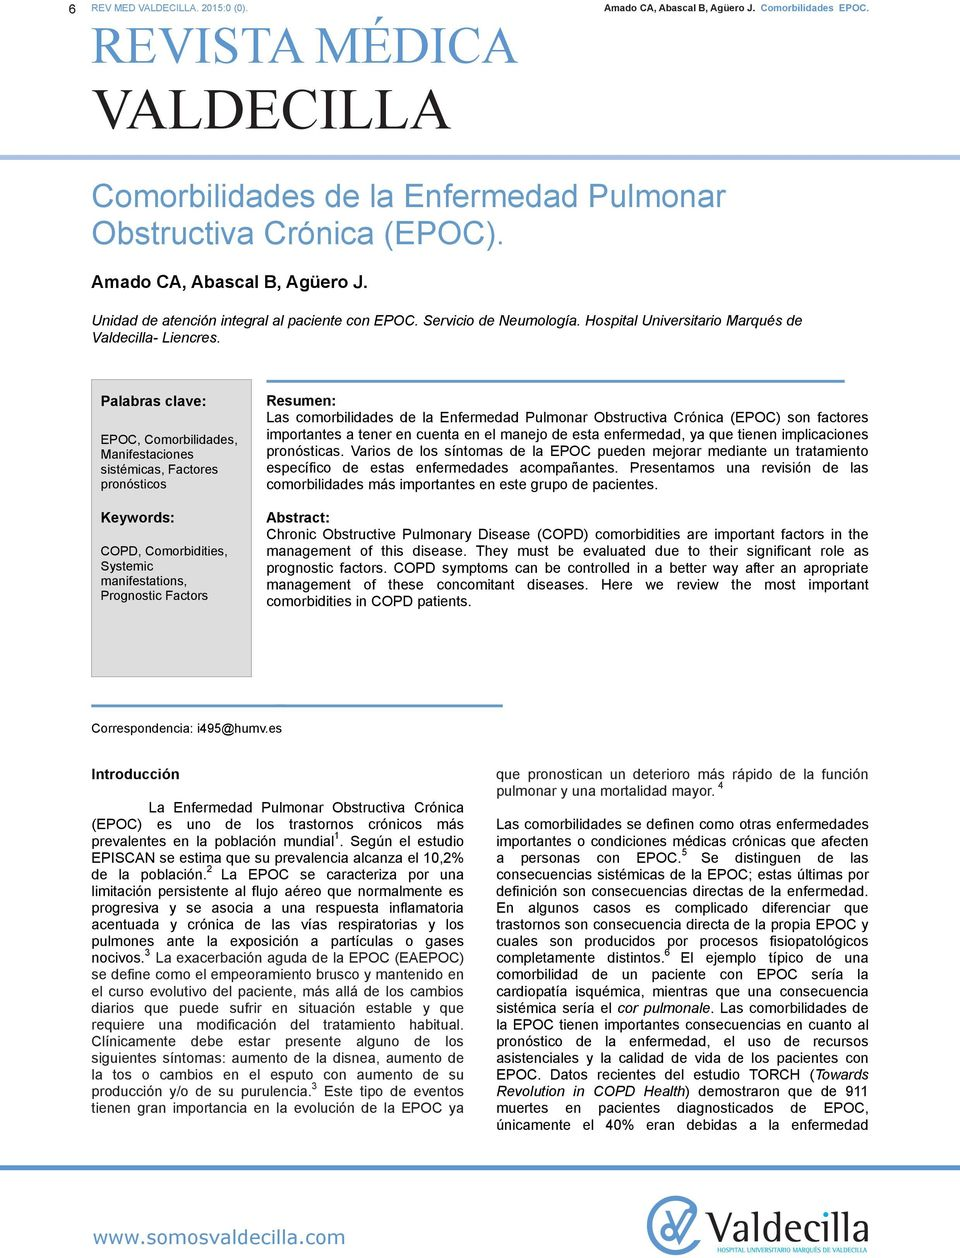 Palabras clave: EPOC, Comorbilidades, Manifestaciones sistémicas, Factores pronósticos Keywords: COPD, Comorbidities, Systemic manifestations, Prognostic Factors Resumen: Las comorbilidades de la